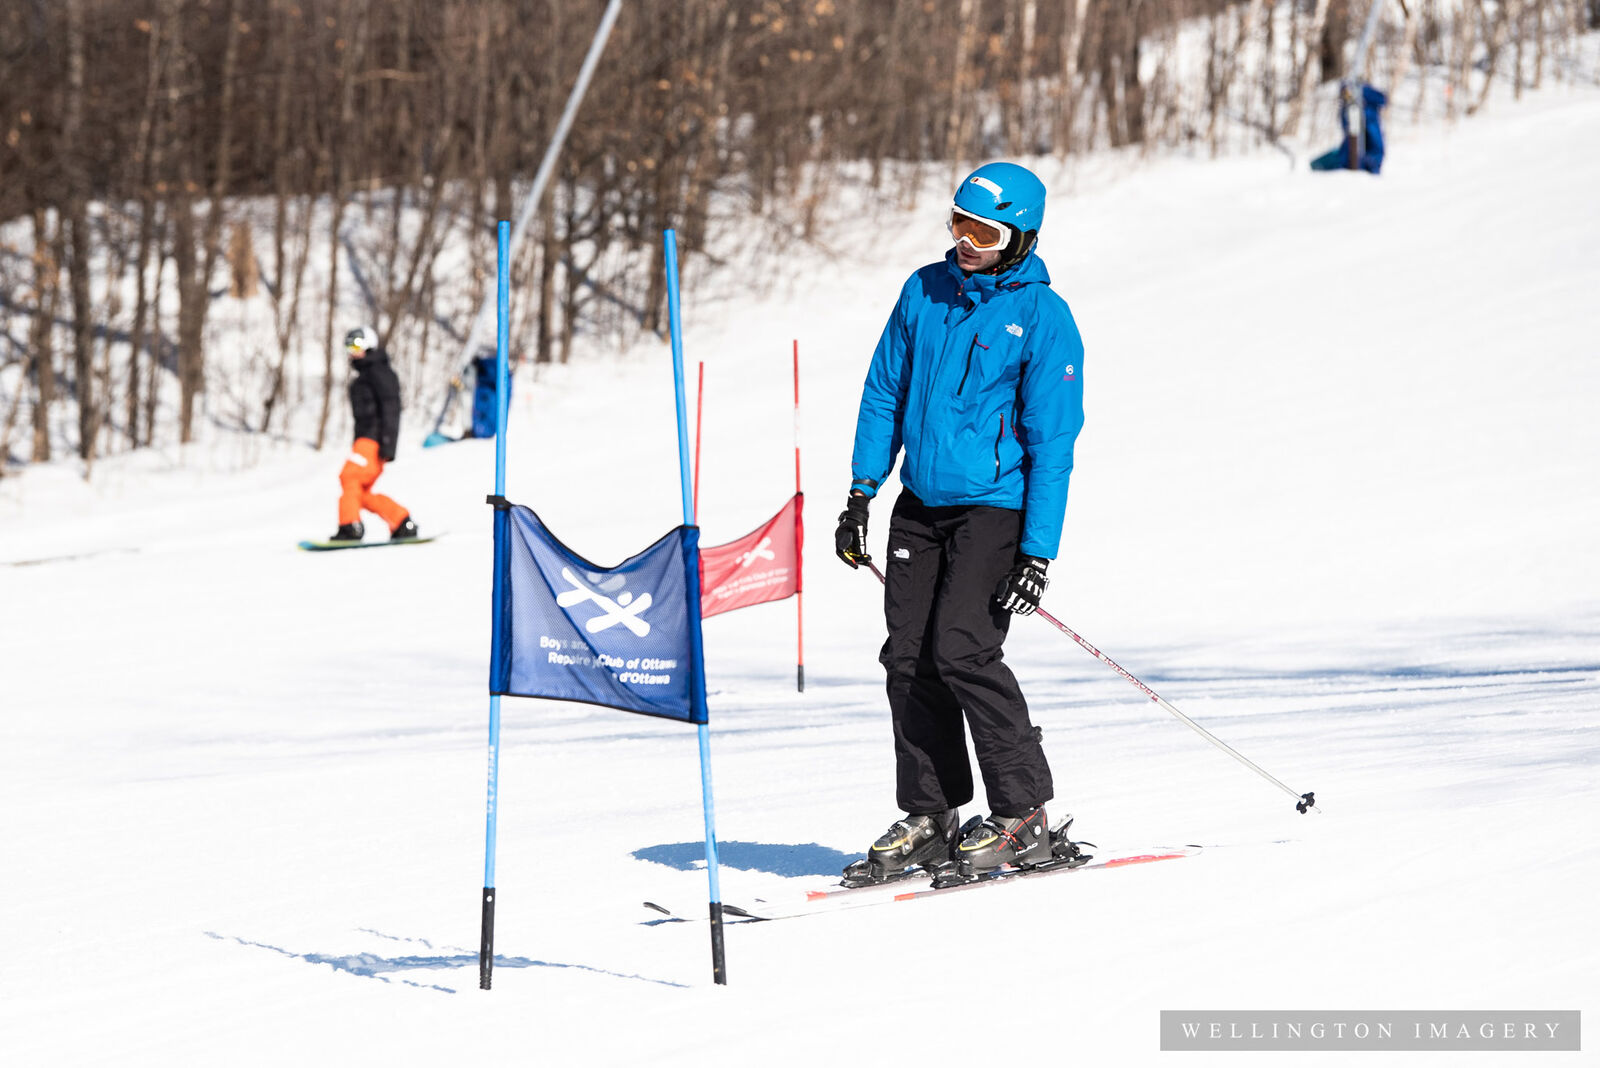 ©WELLINGTONIMAGERY 20190228 142532 BGCO Skiathon 1694 WM 2048px